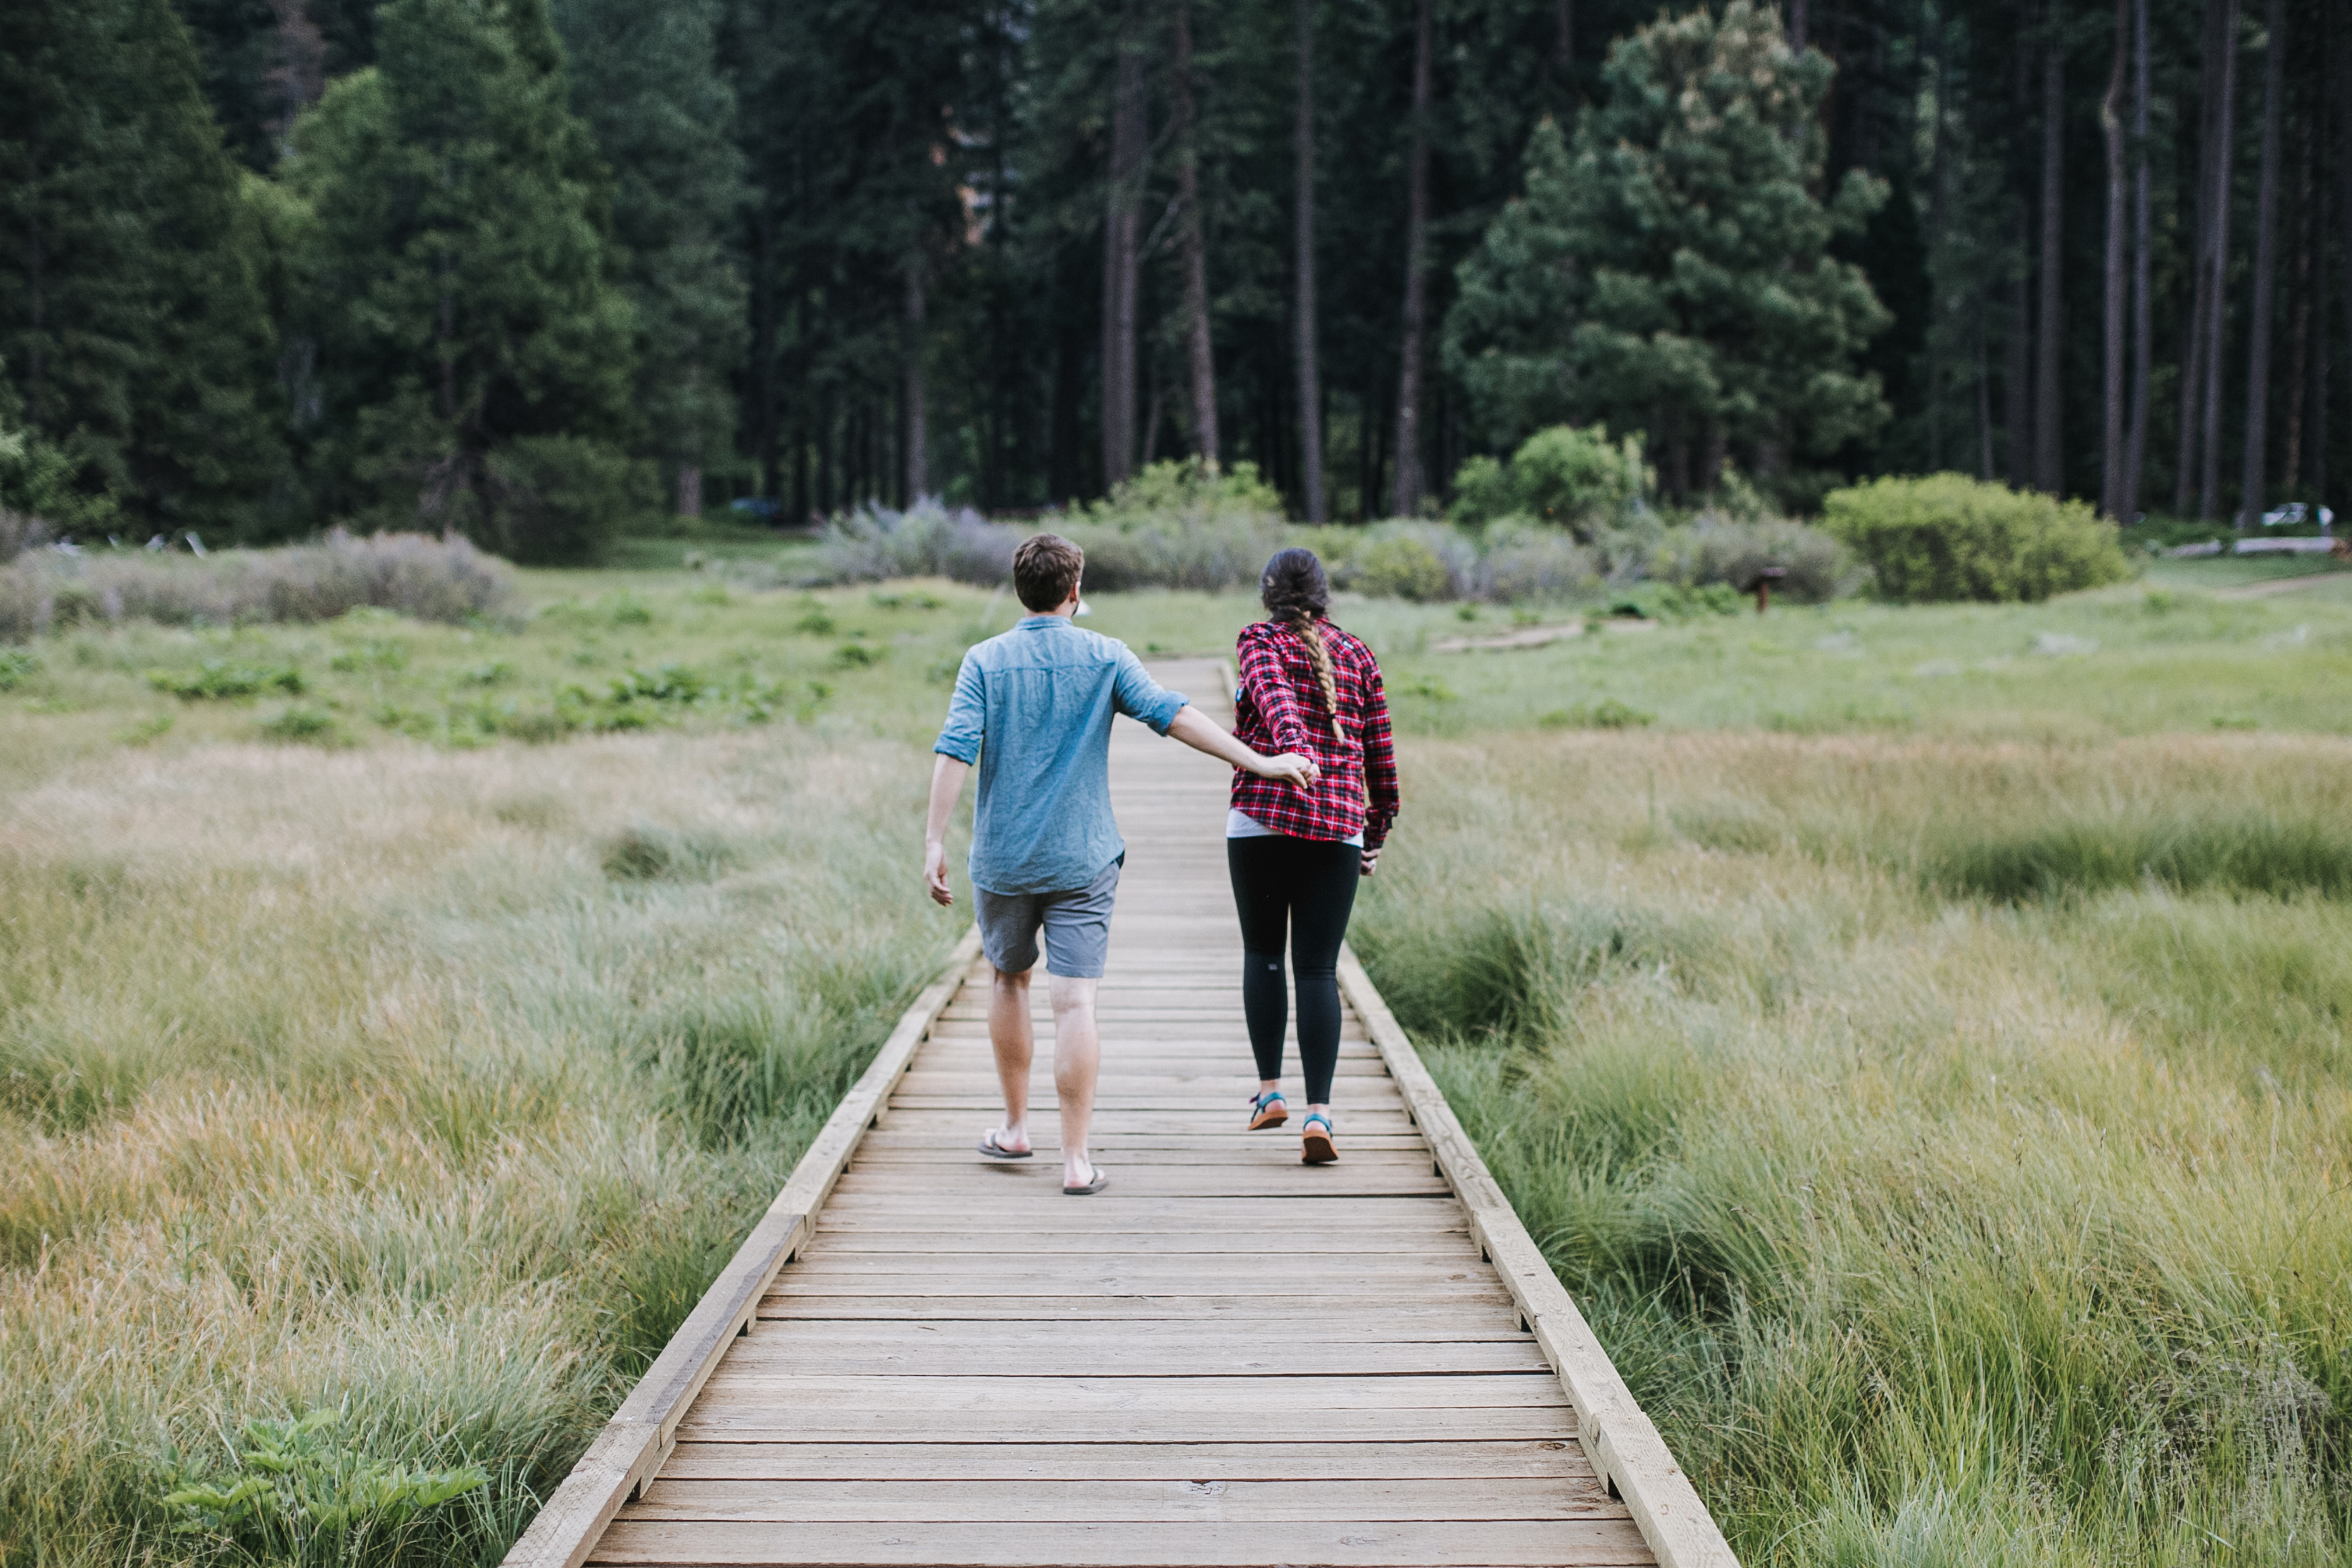 Engagement Proposal Ideas in Yosemite National Park